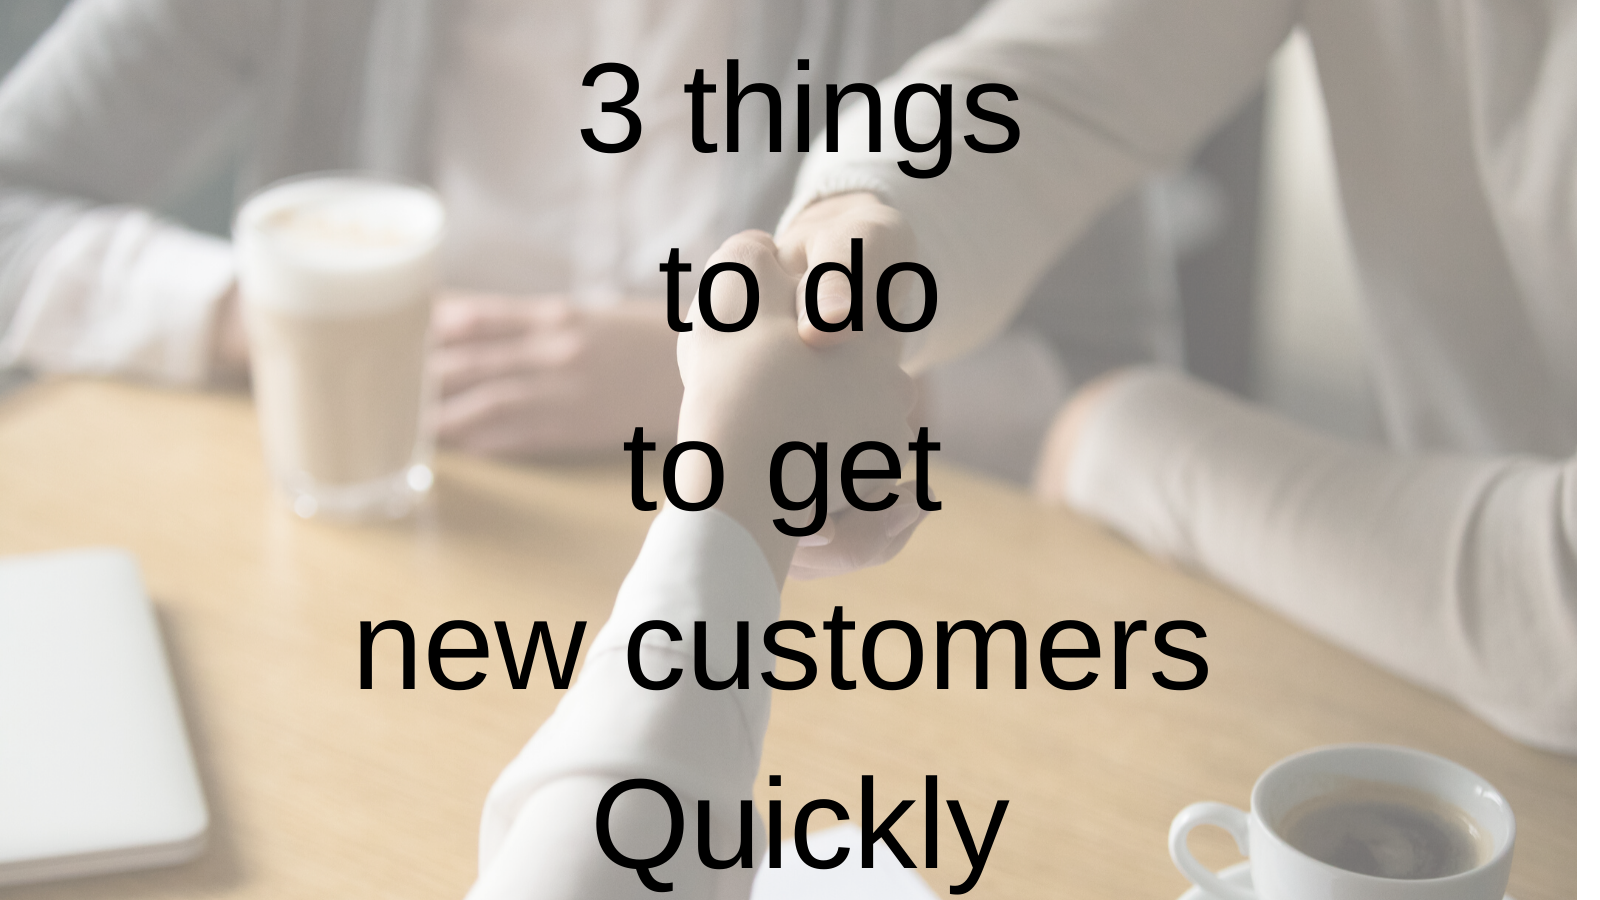 3 things to do to get new customers Quickly